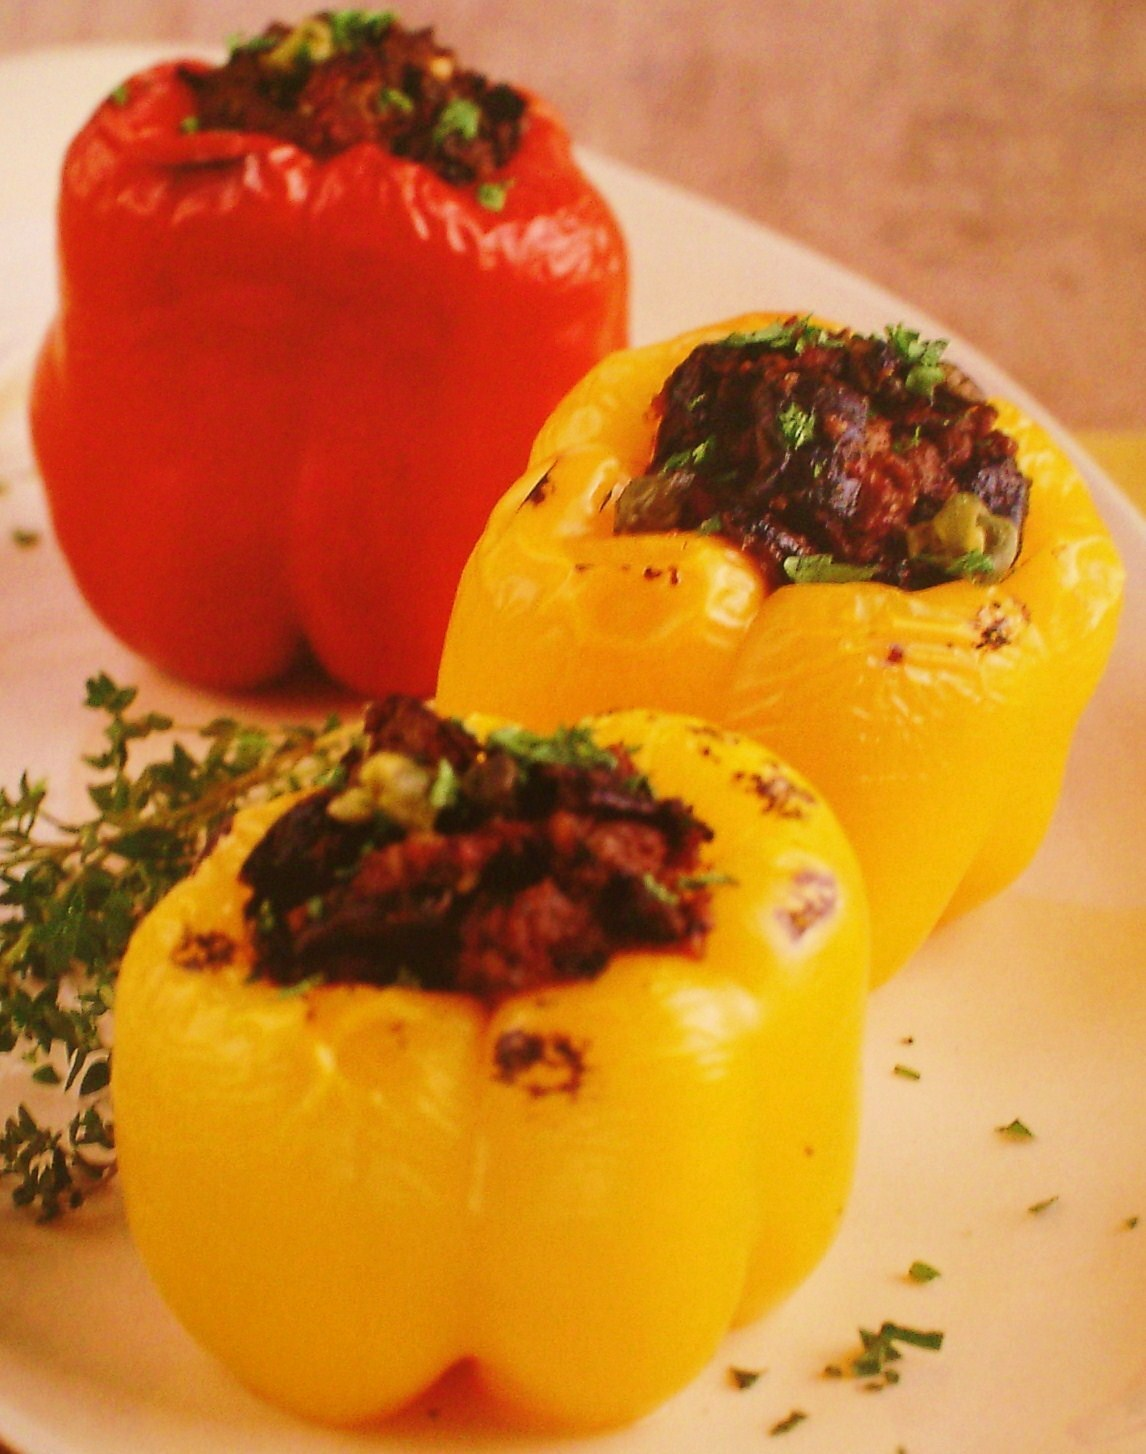 Italian food images stuffed peppers hd wallpaper and for About italian food